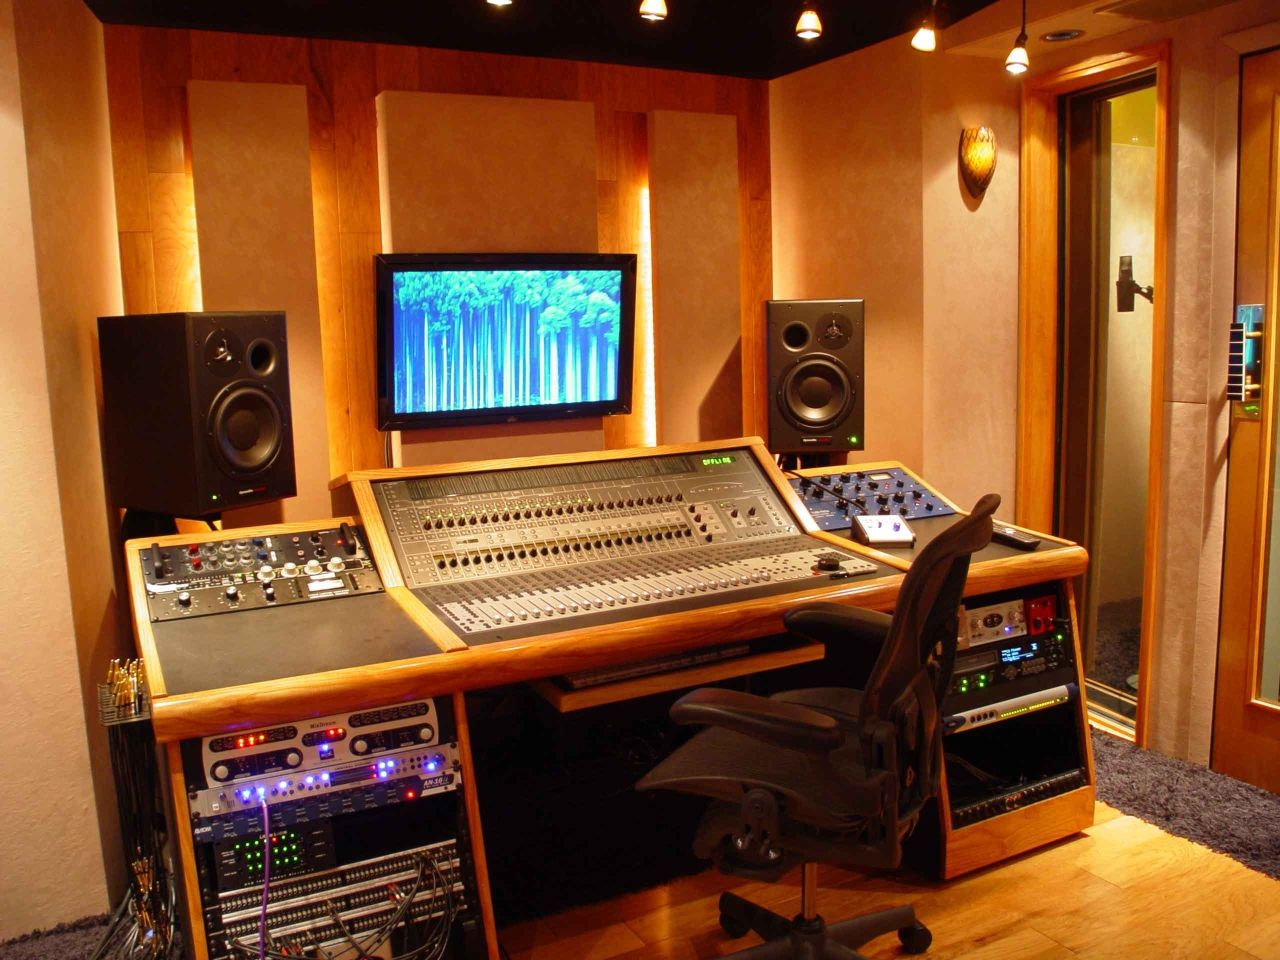 Marvelous 17 Best Images About Home Audio Studio On Pinterest A Well Home Largest Home Design Picture Inspirations Pitcheantrous